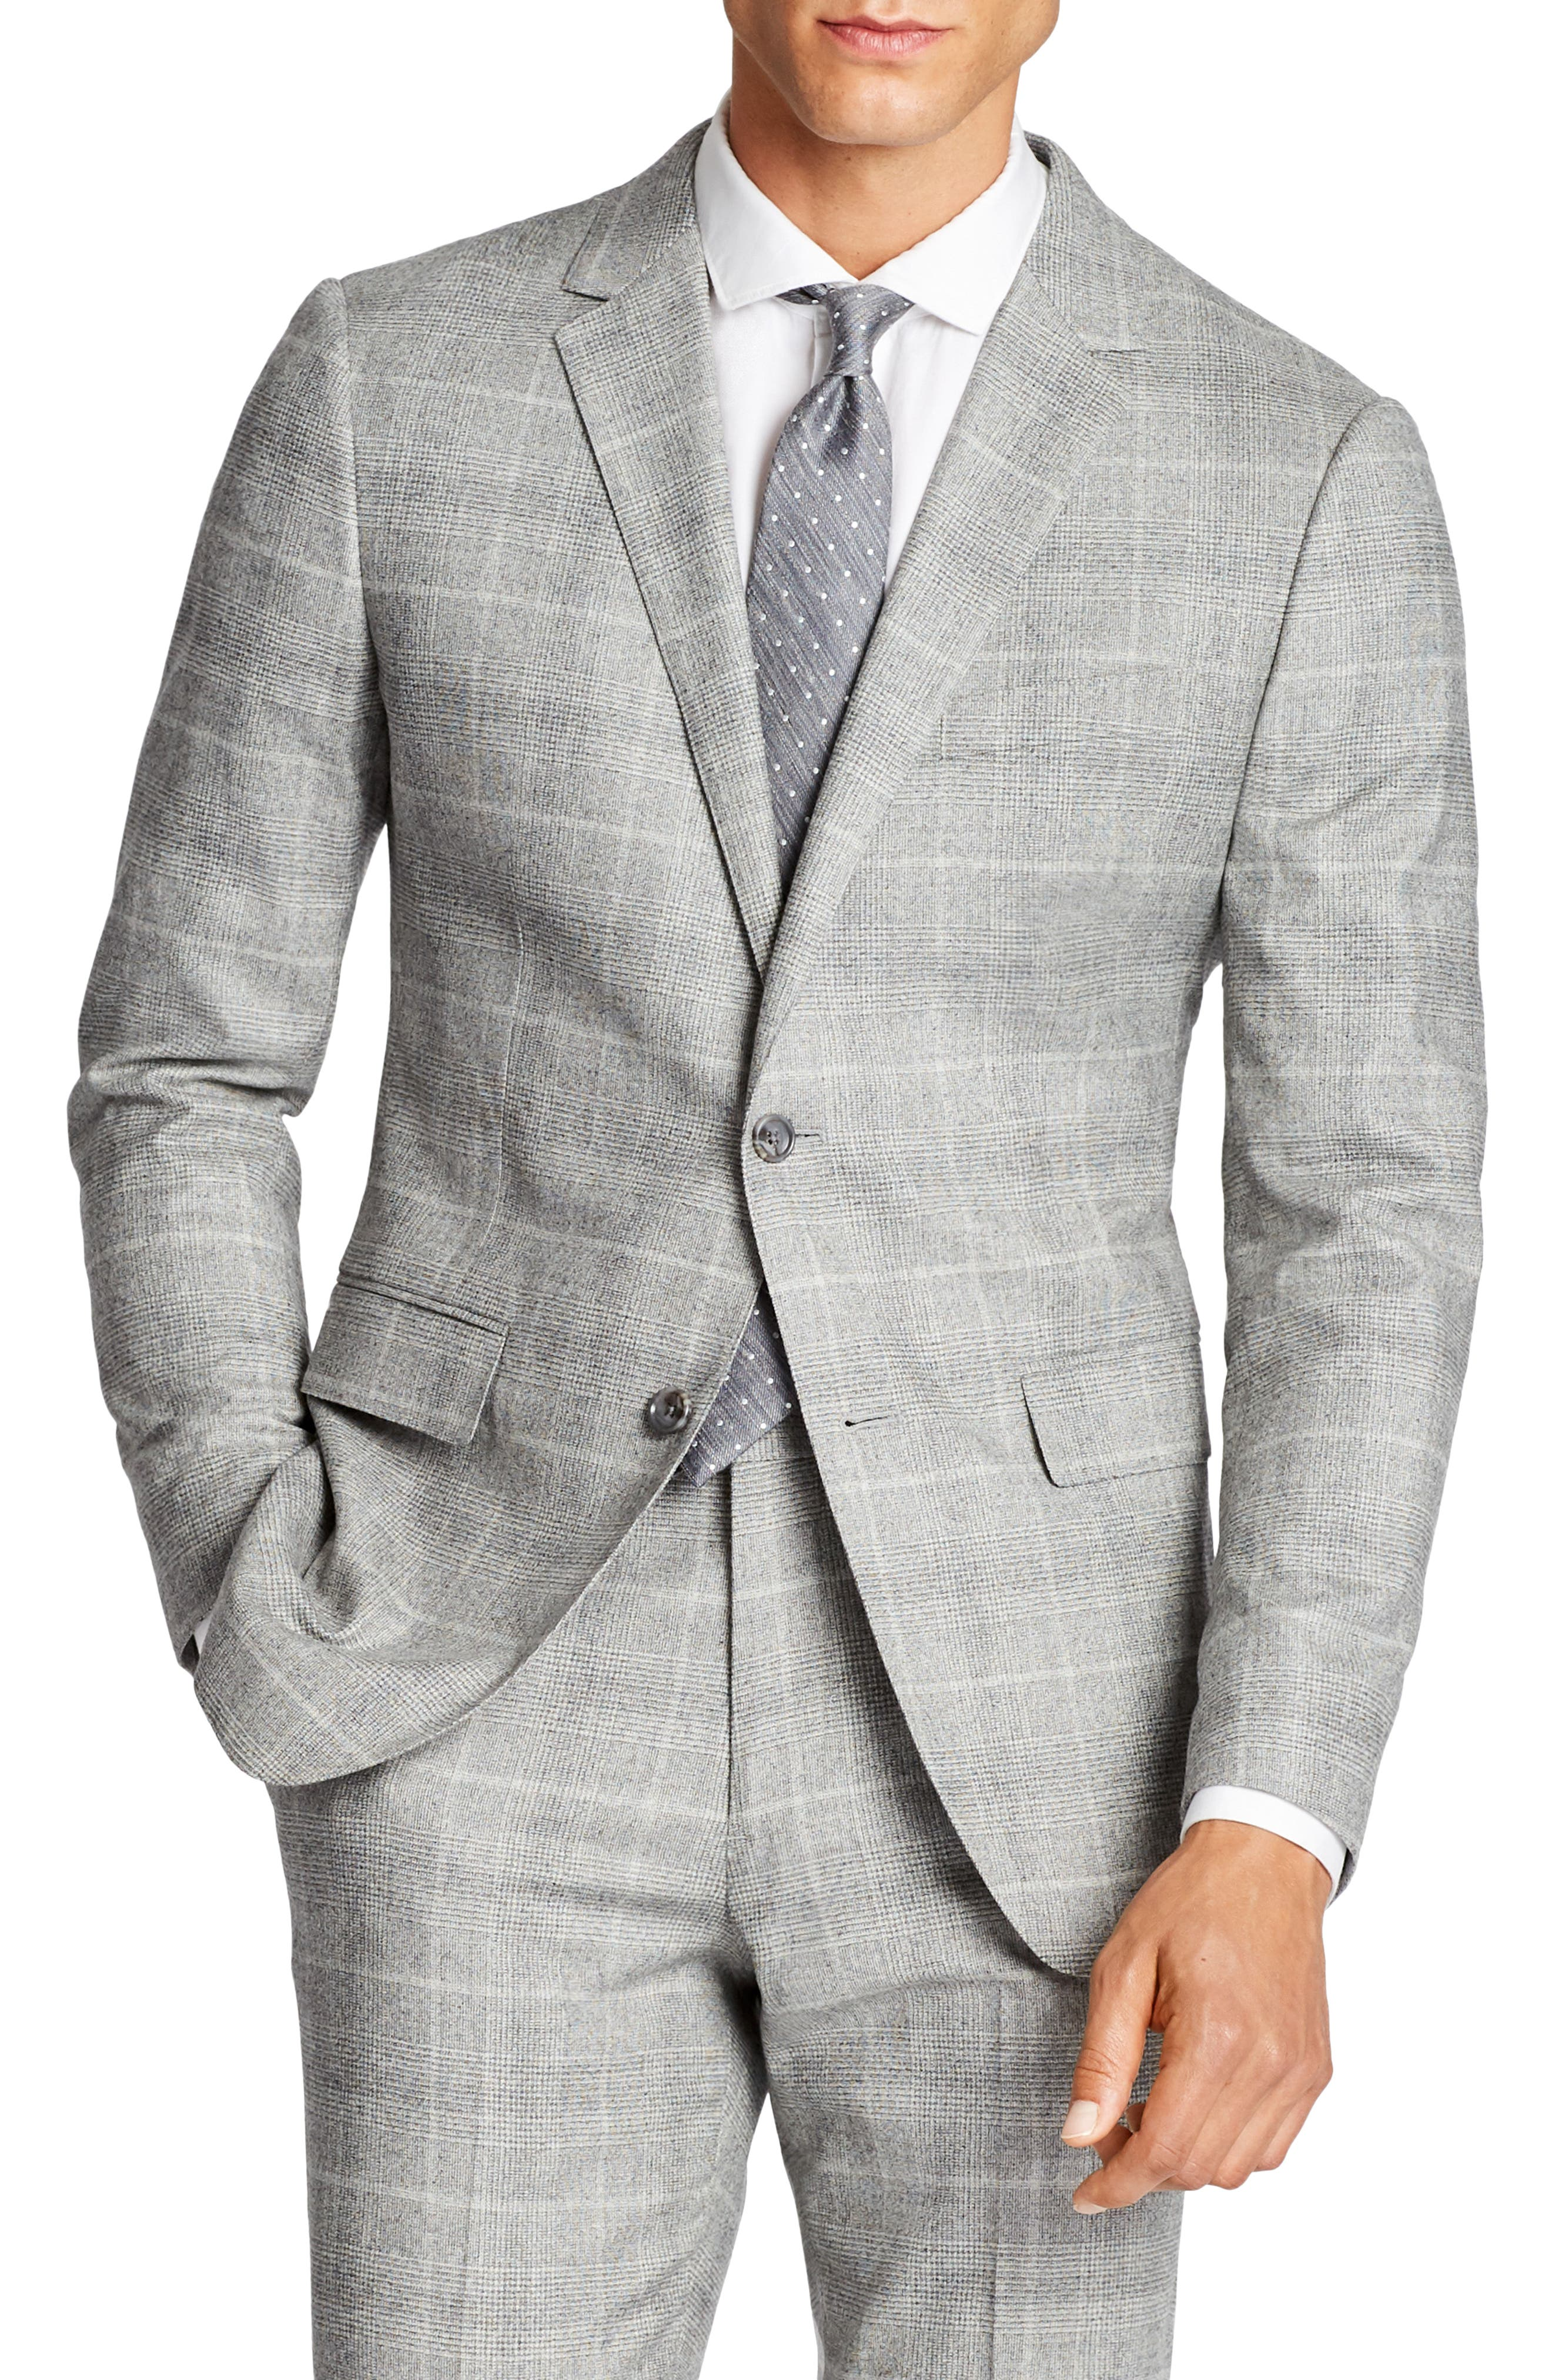 Jetsetter Slim Fit Plaid Stretch Wool Sport Coat,                         Main,                         color, 020